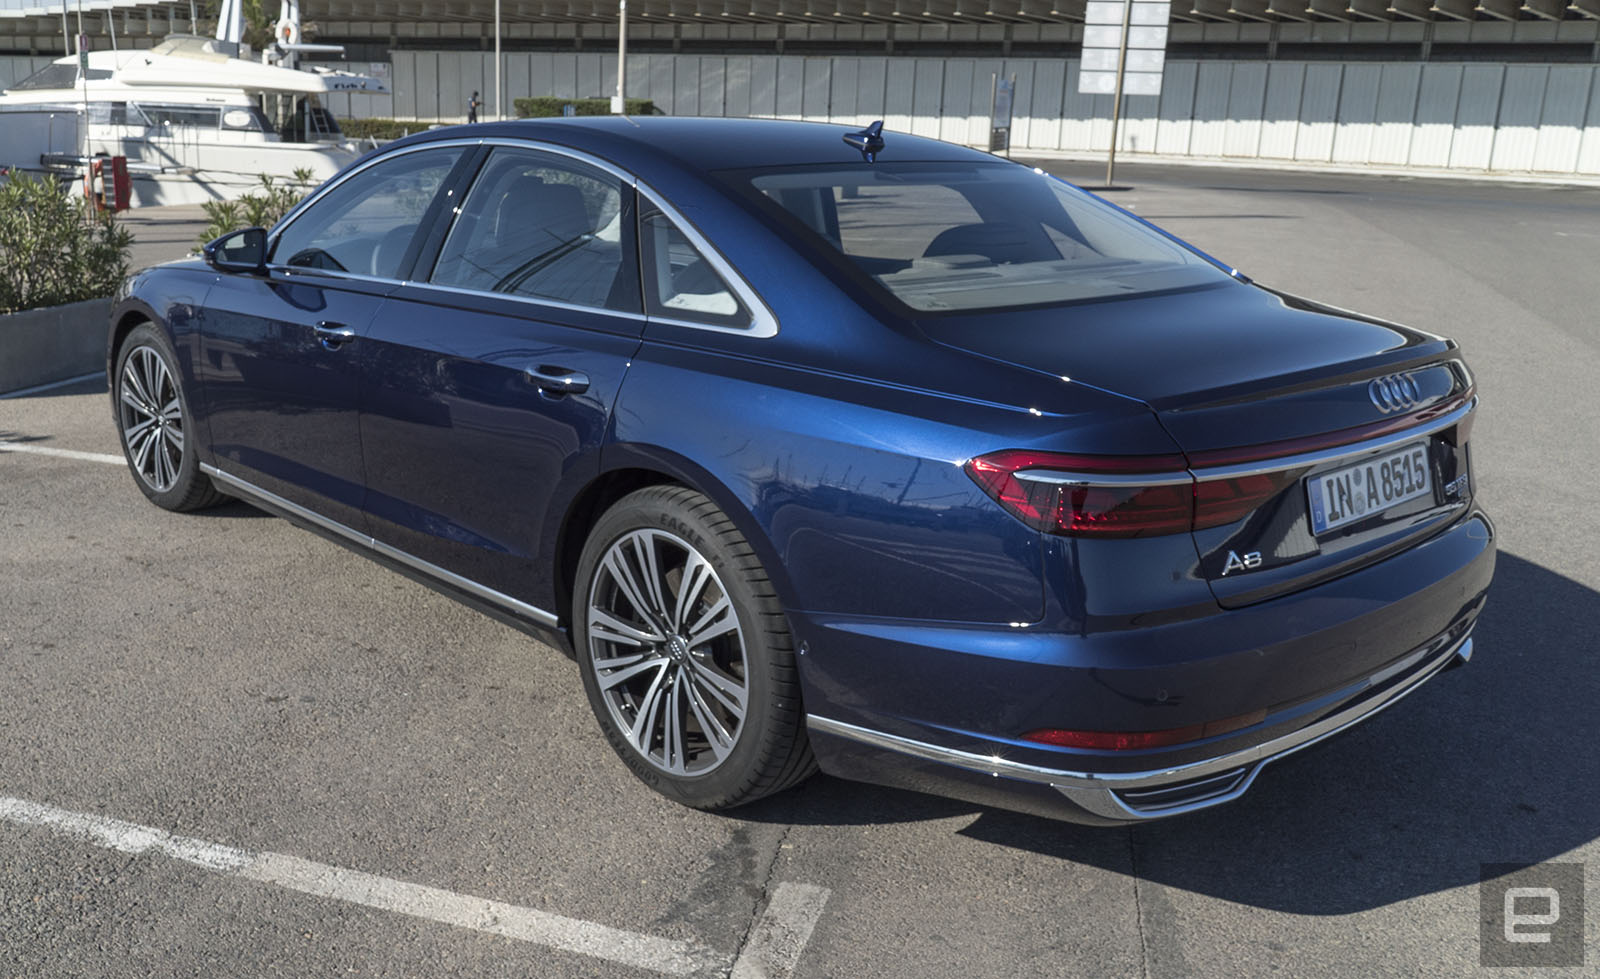 Audi audi a8 : Audi's flagship A8 has an overwhelming amount of tech